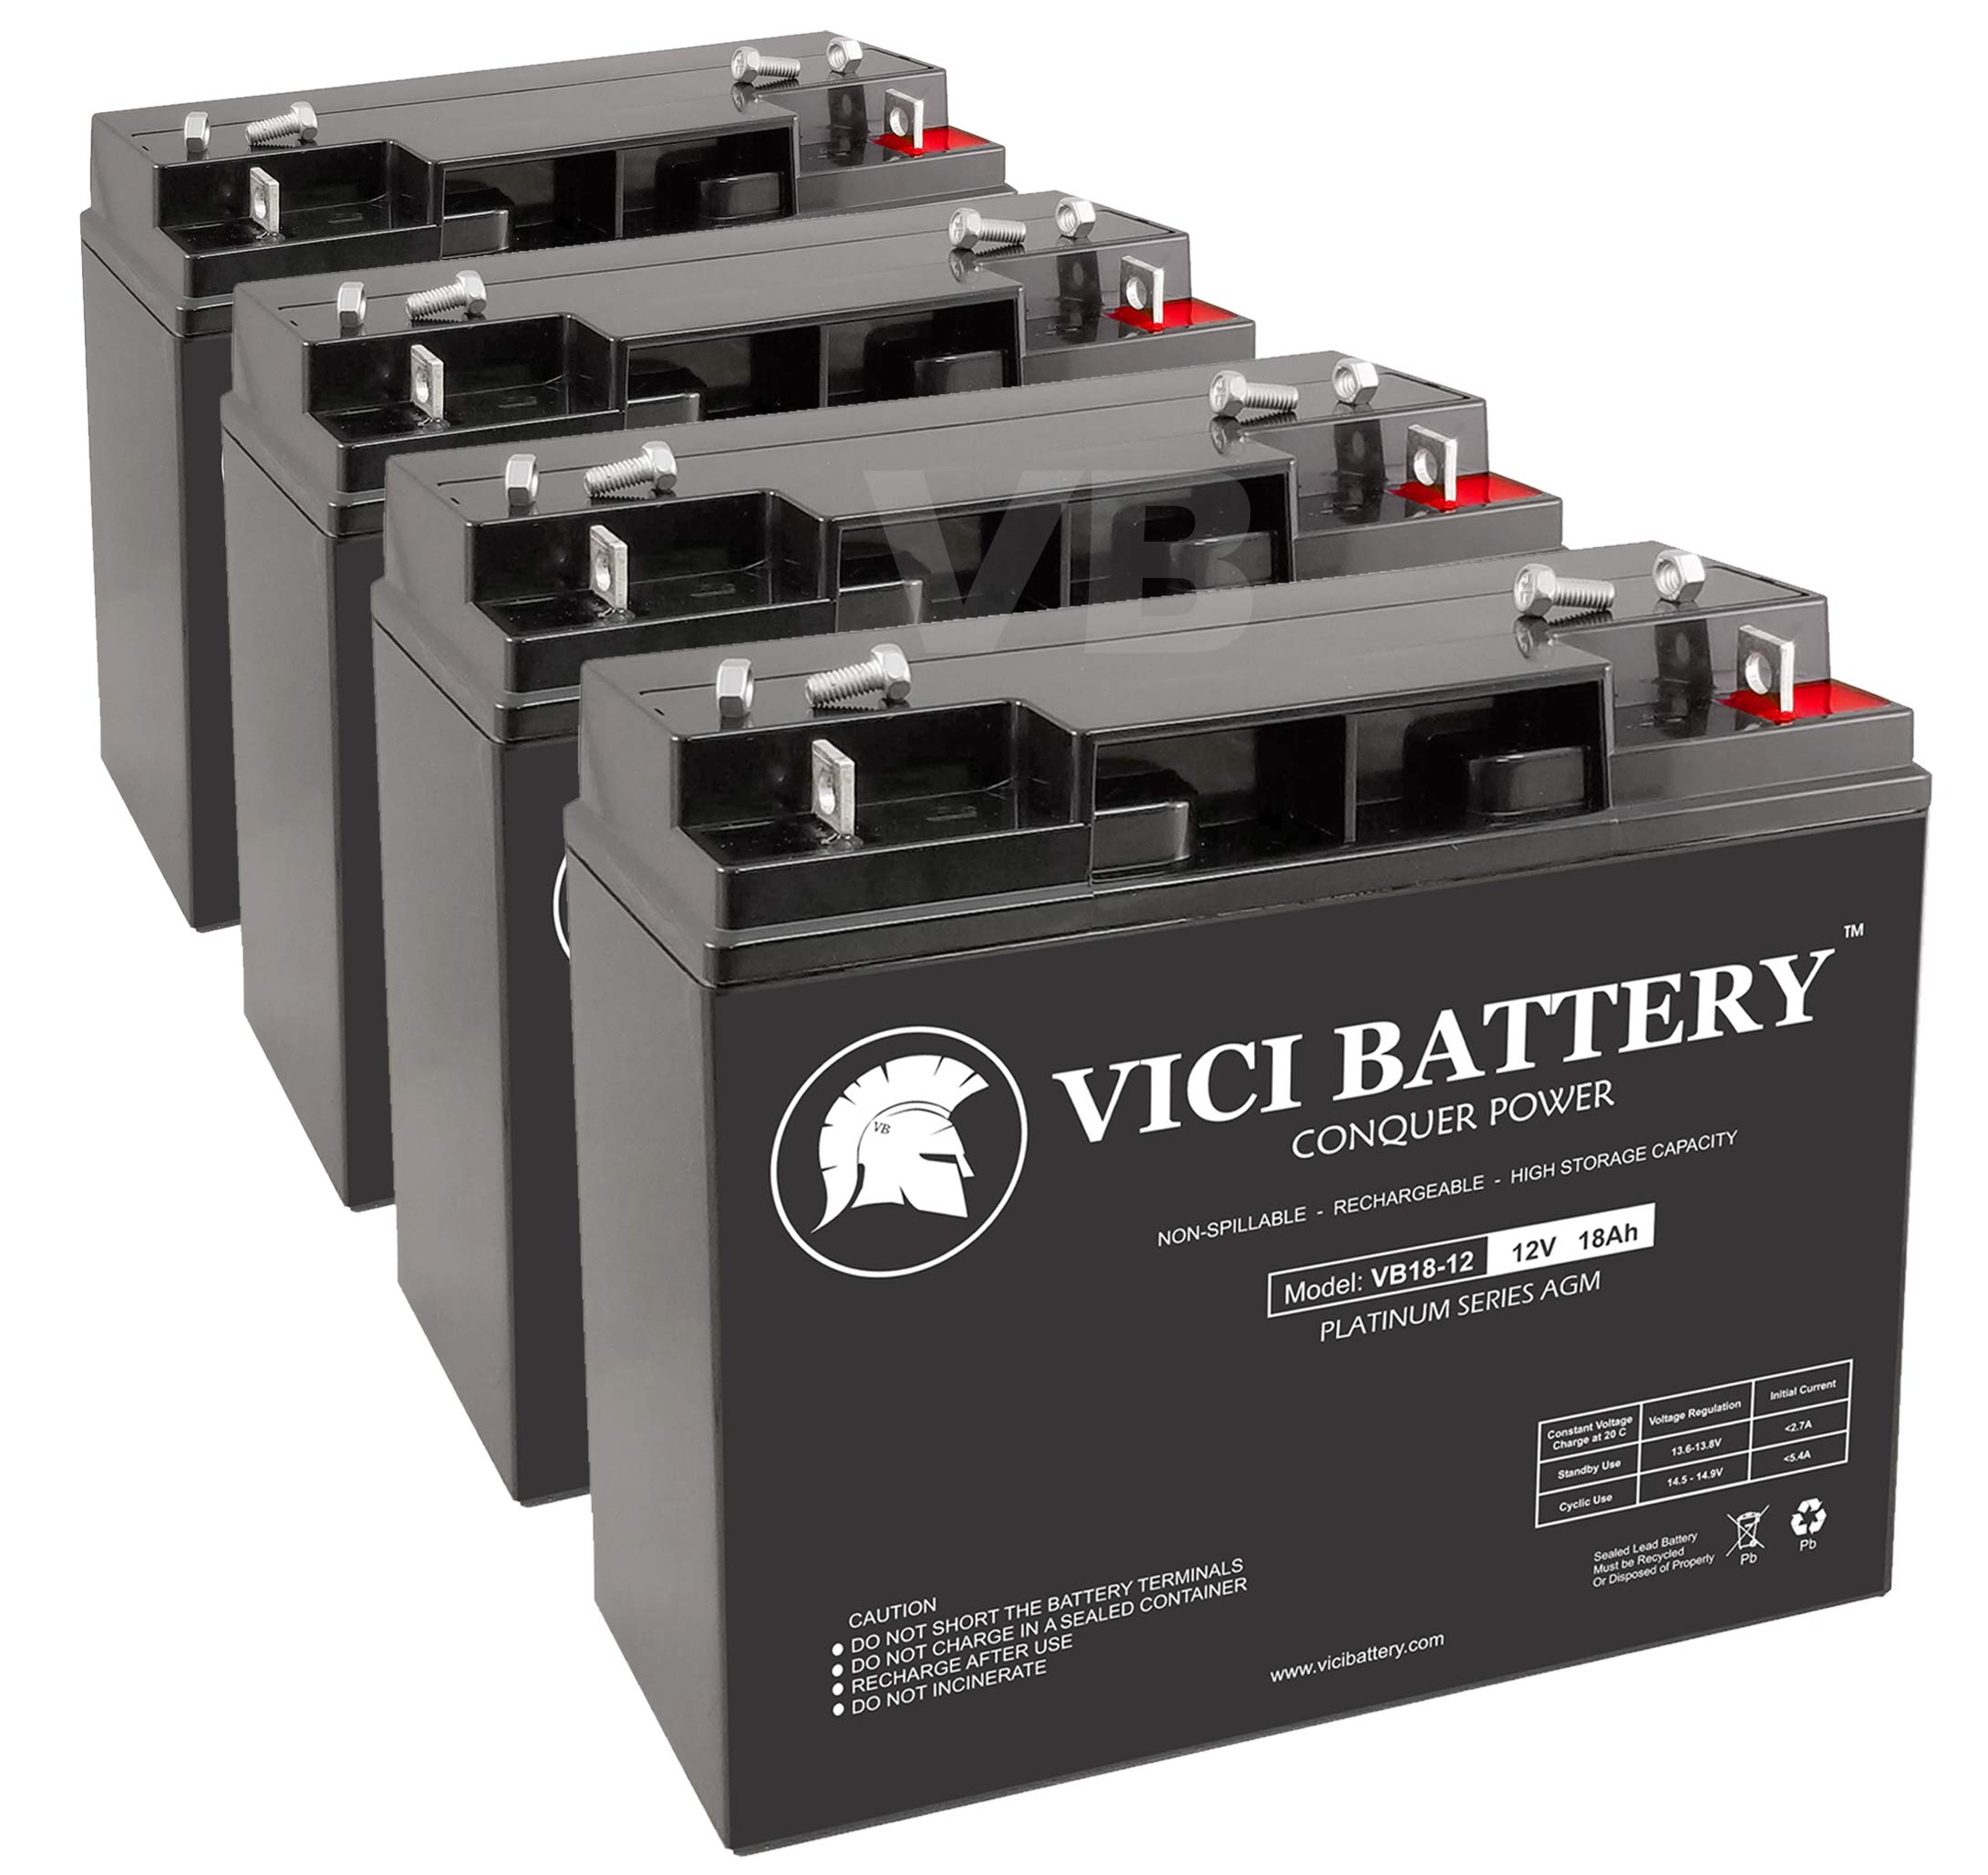 VICI Battery VB18-12 - 12V 18AH Replacement for TaoTao ATE-501 Electric Scooter Battery Set - 4 Pack by VICI Battery